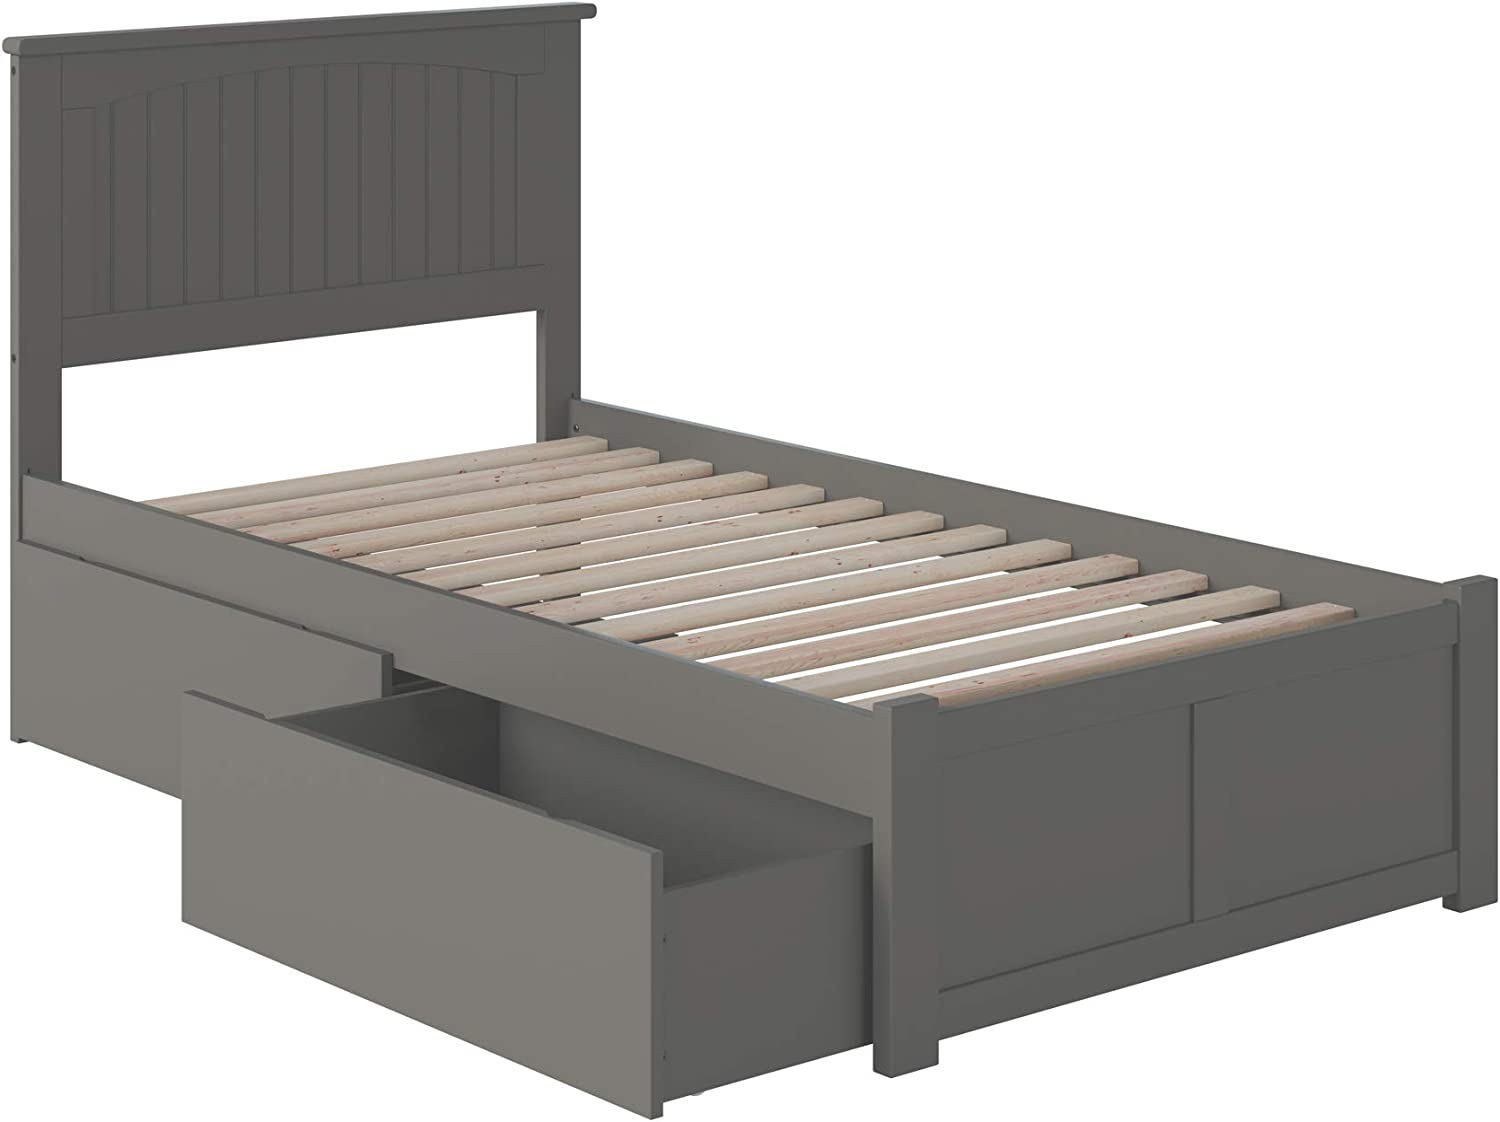 Atlantic Furniture Nantucket Platform Bed with 2 Urban Bed Drawers, Twin, Grey